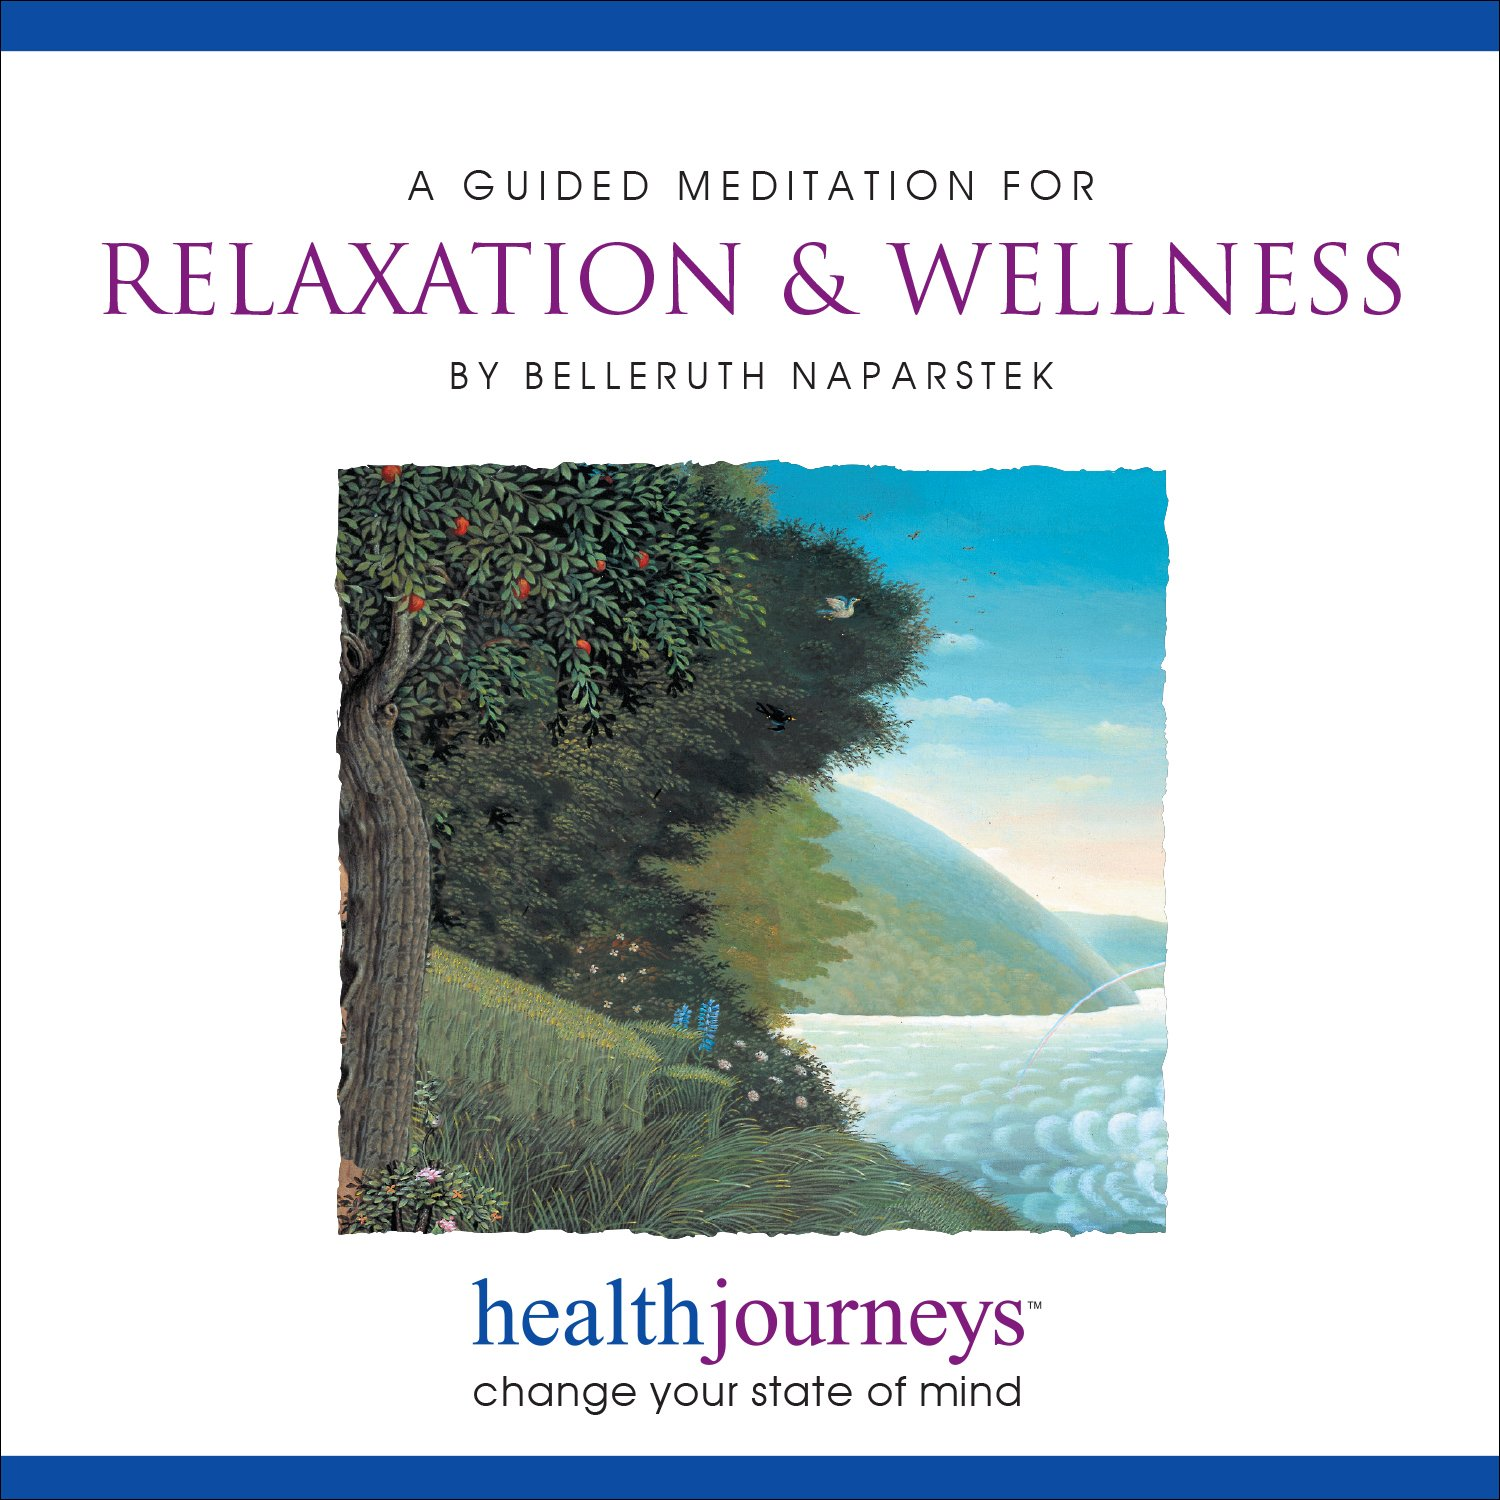 A Guided Meditation for Relaxation & Wellness -- Guided Imagery for Daily Relaxation, Facing Stressful Situations with Centered Calm, and Sustaining the Peace, Uplift and Gratitude of an Open Heart by Brand: Health Journeys